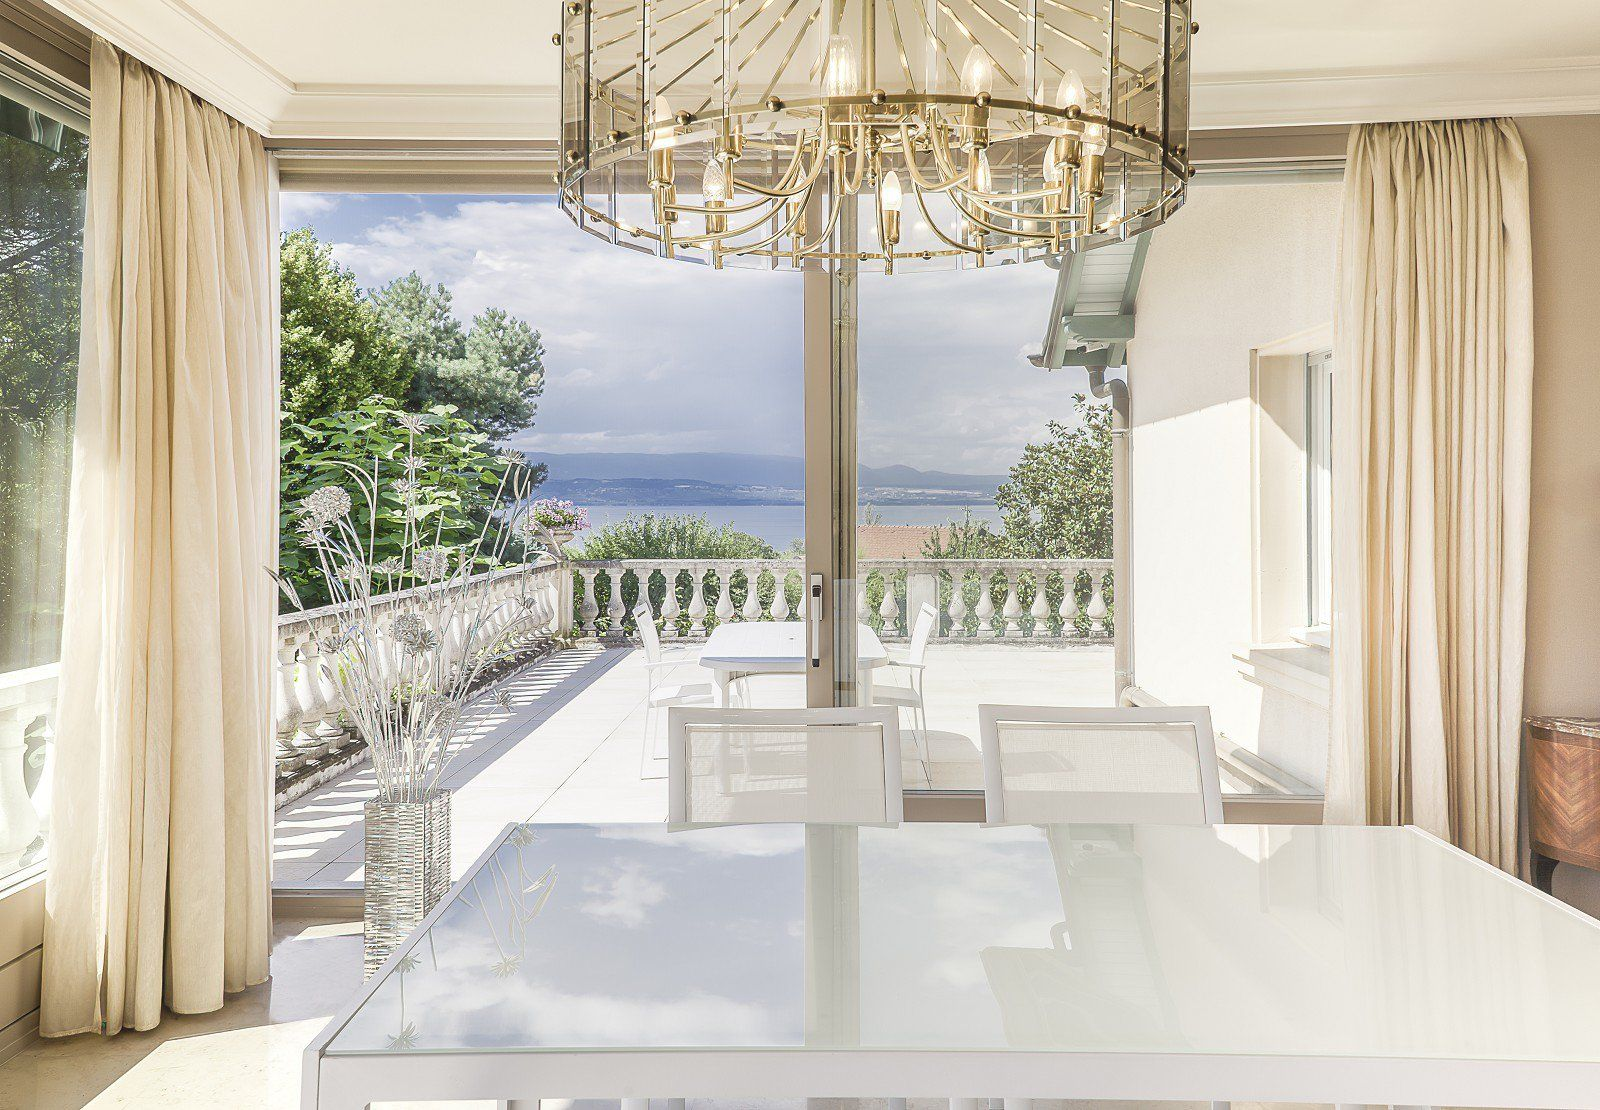 Lake Geneva - Exceptional property overlooking Lake Geneva of 382 sq. m - Park of 6 107 sq. m - 6 bedrooms